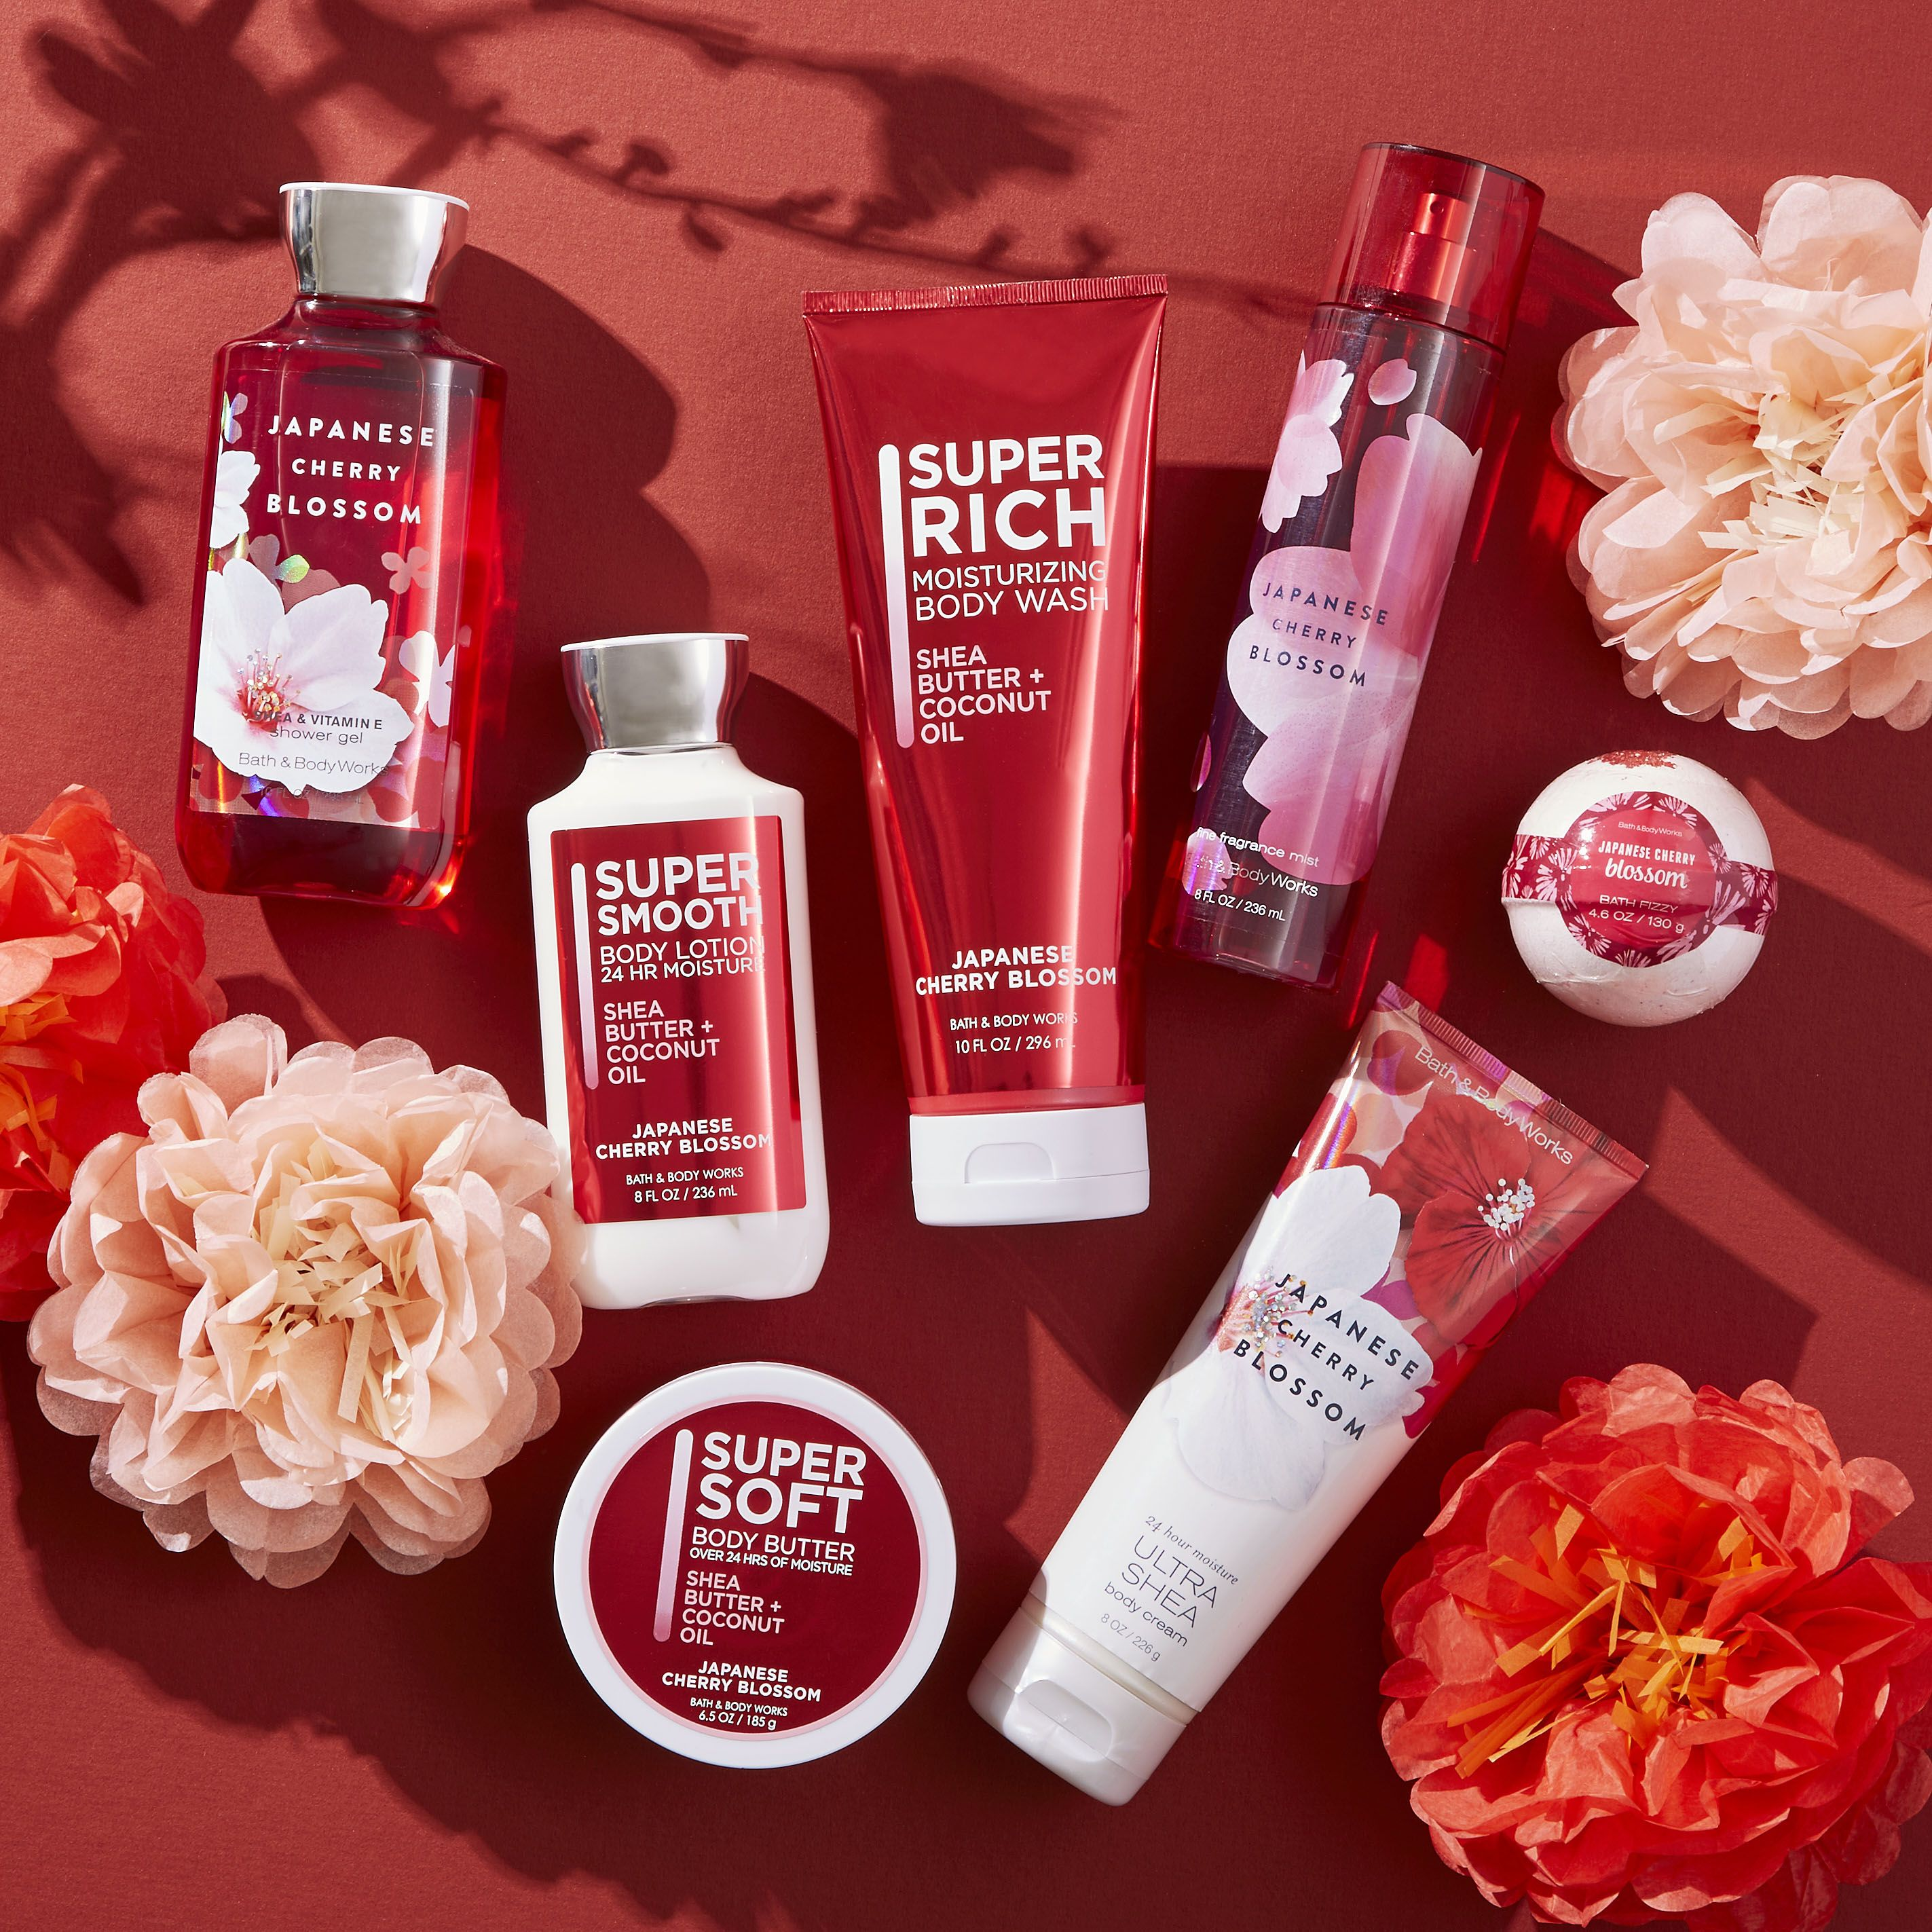 Japanese Cherry Blossom Bath And Body Works Perfume Bath And Body Works Bath N Body Works